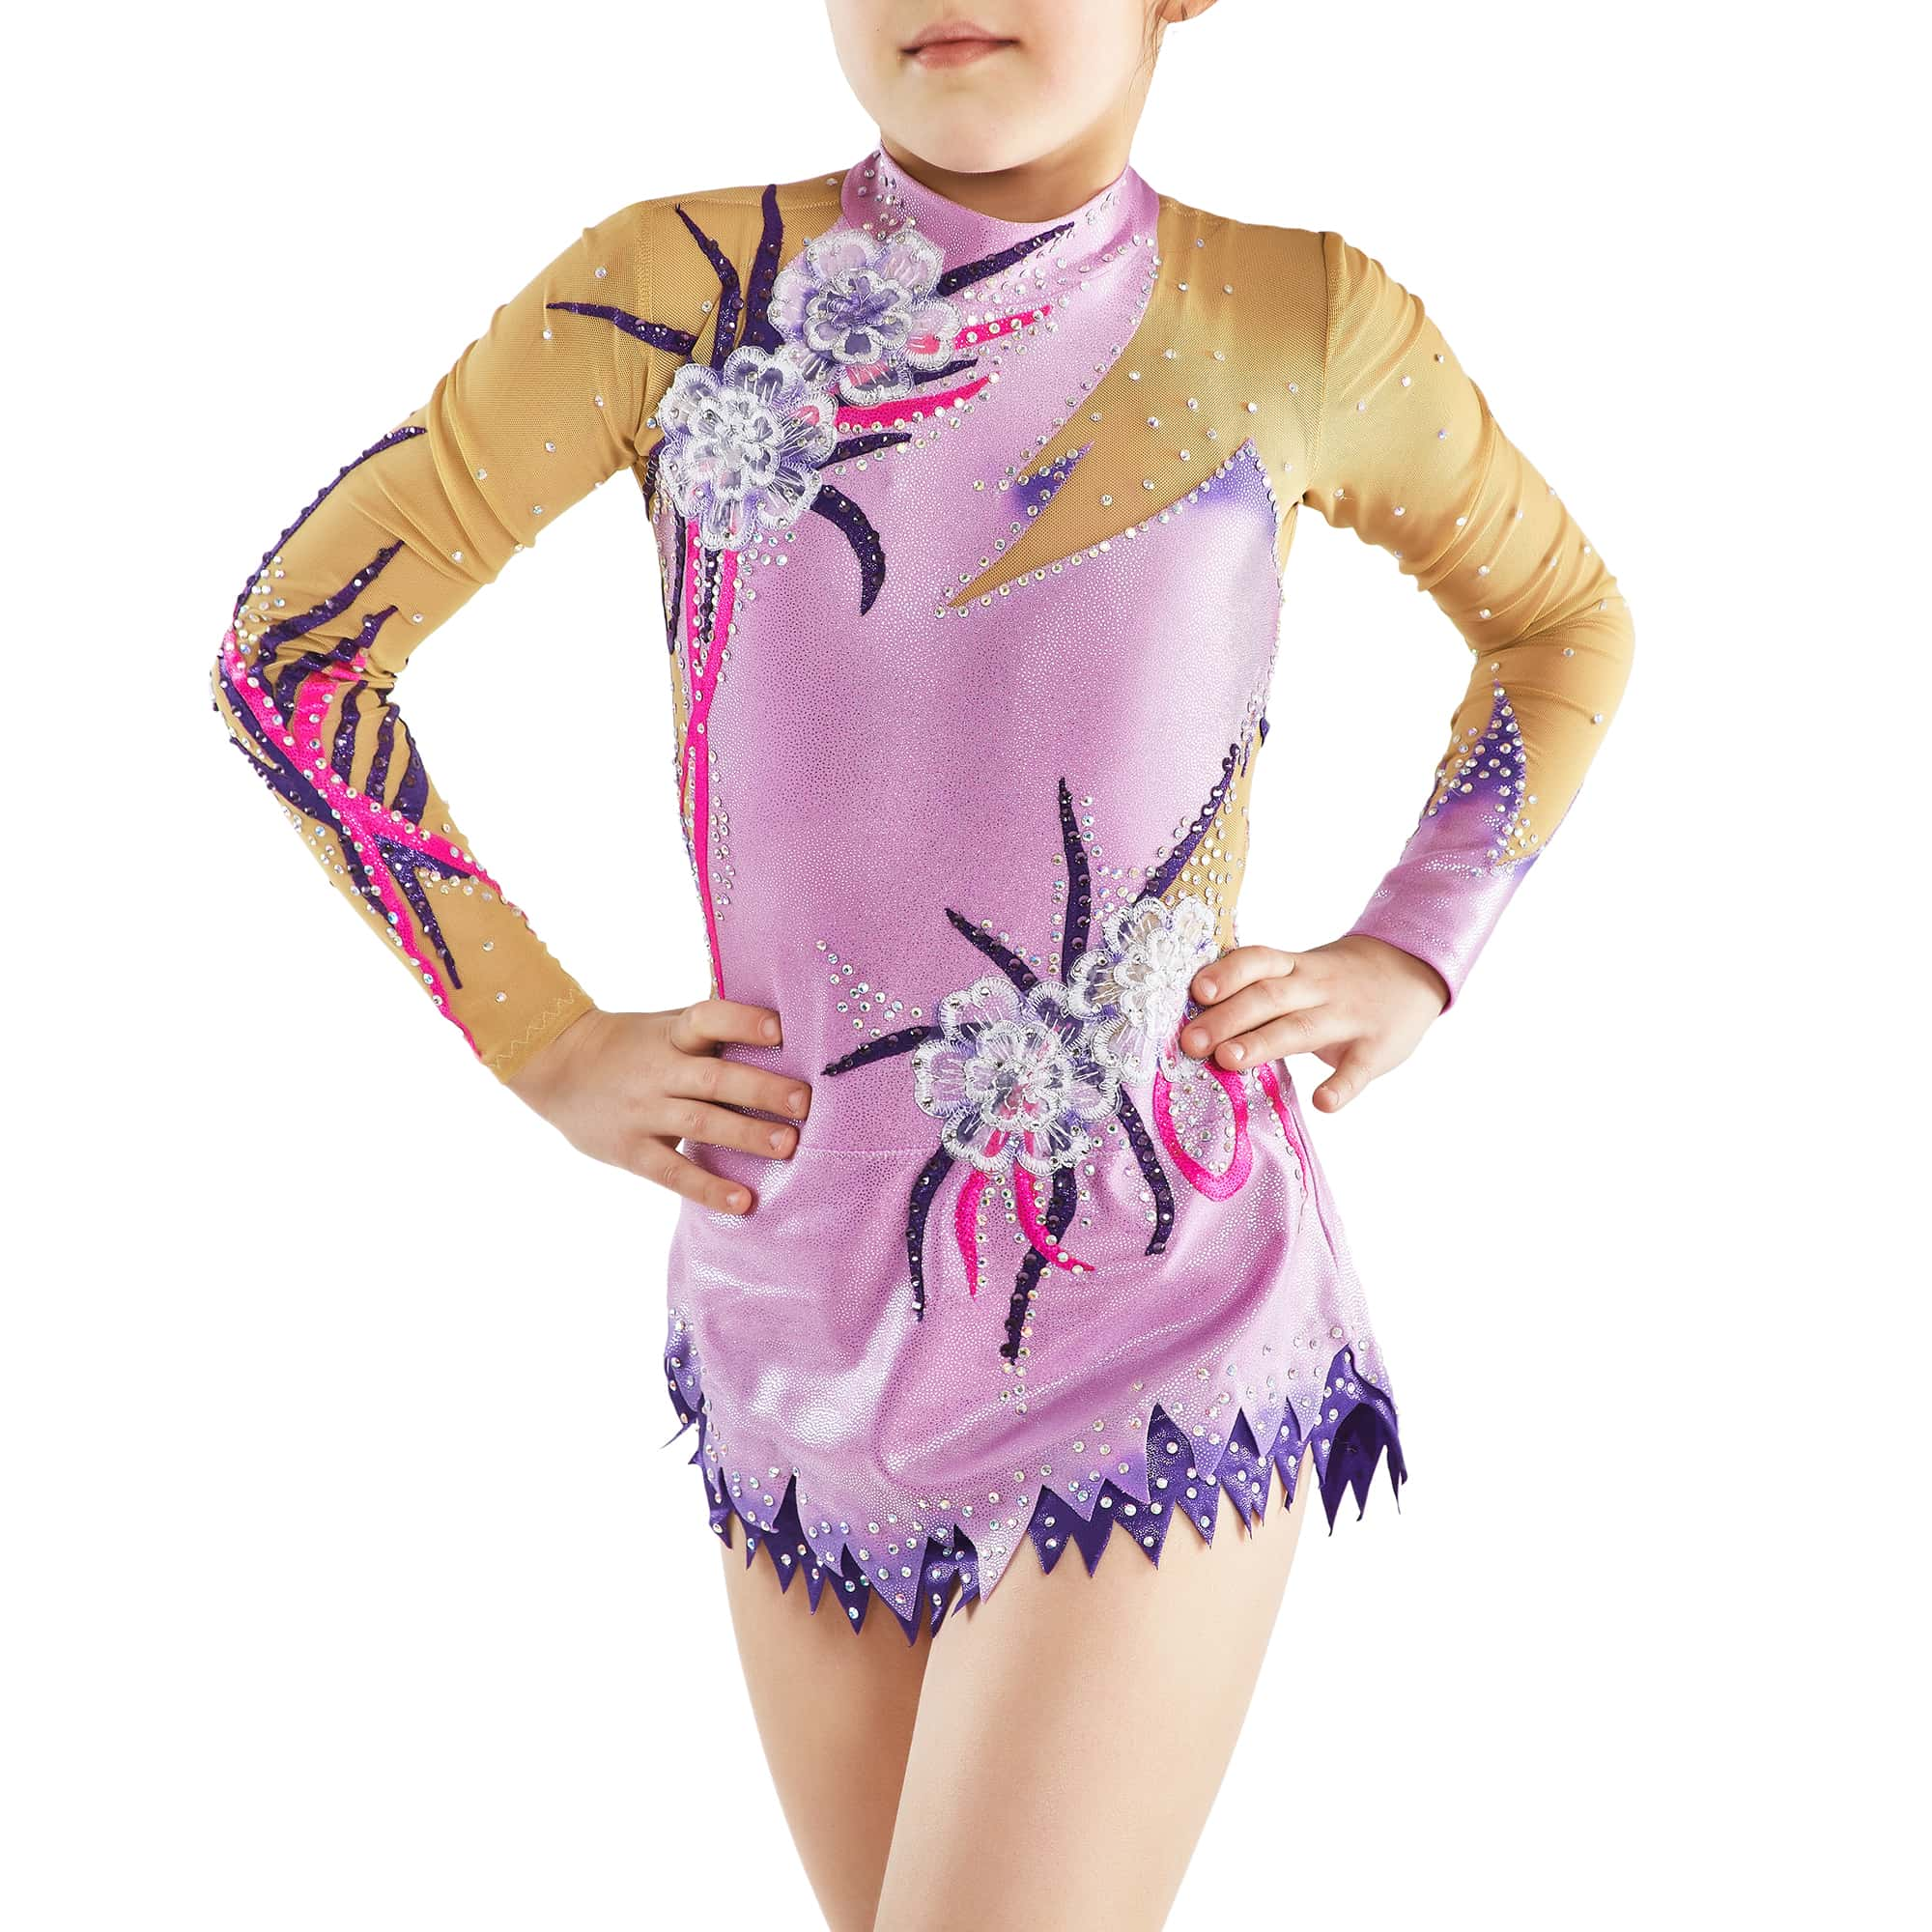 Front view of the lilac, dark purple, magento gymnastics leotard № 165 for competitions